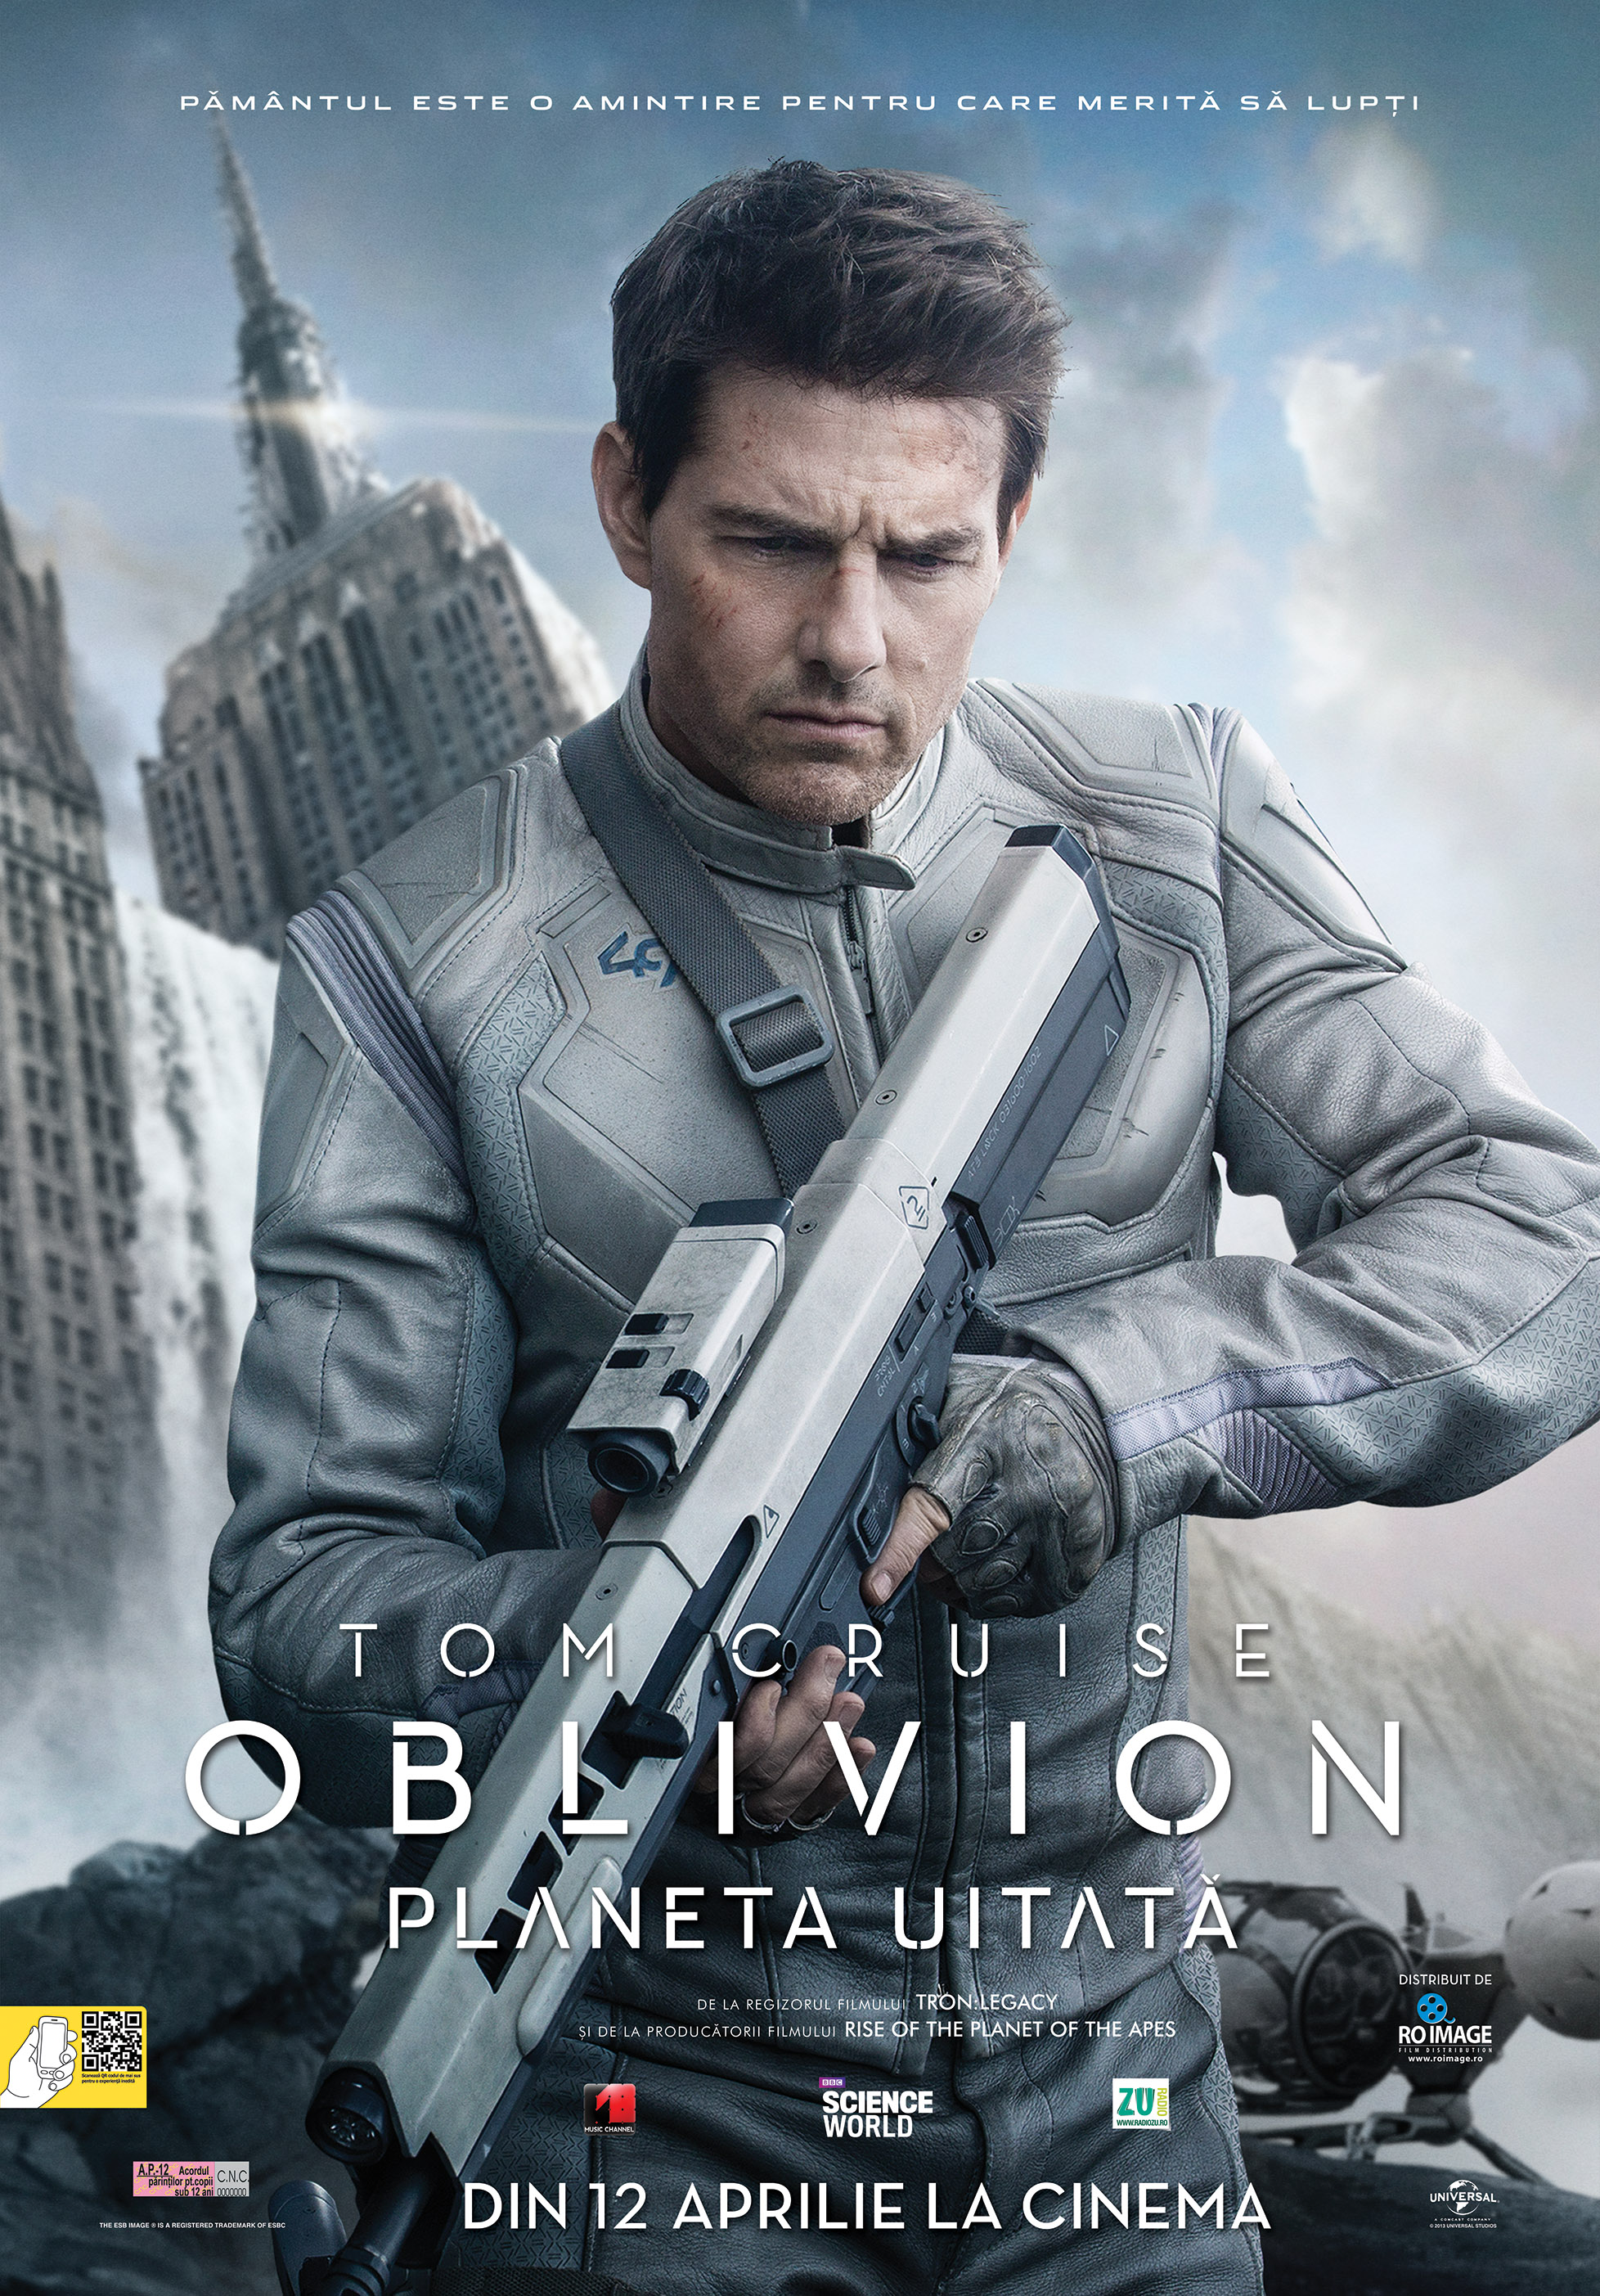 http://static.cinemagia.ro/img/db/movie/48/86/82/oblivion-790754l.jpg